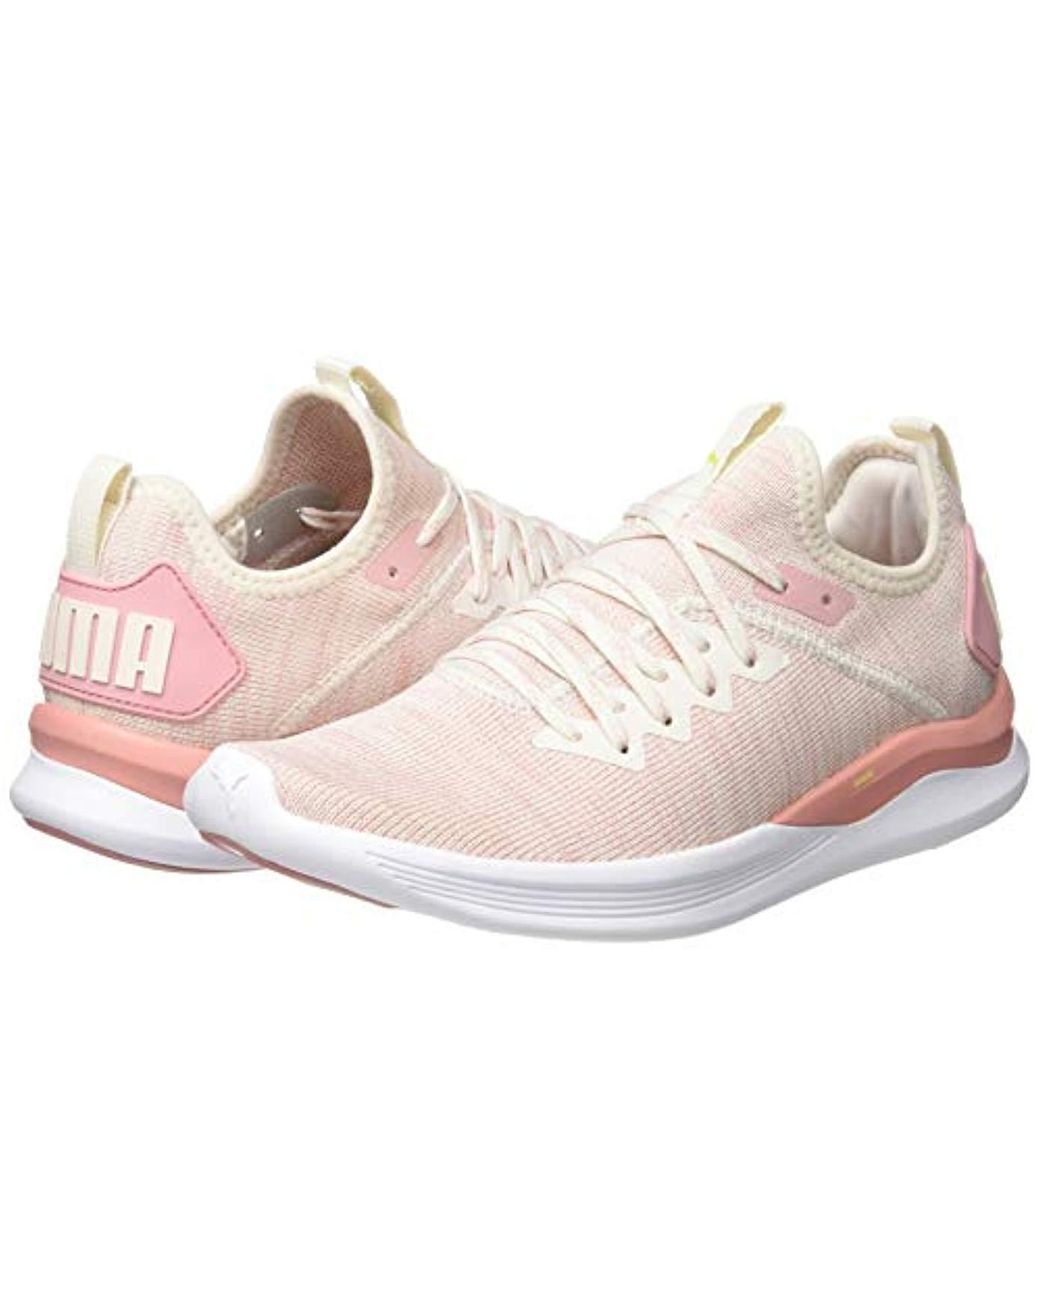 separation shoes 37a36 03bf2 Women's Pink Ignite Flash Evoknit Wn's Running Shoes